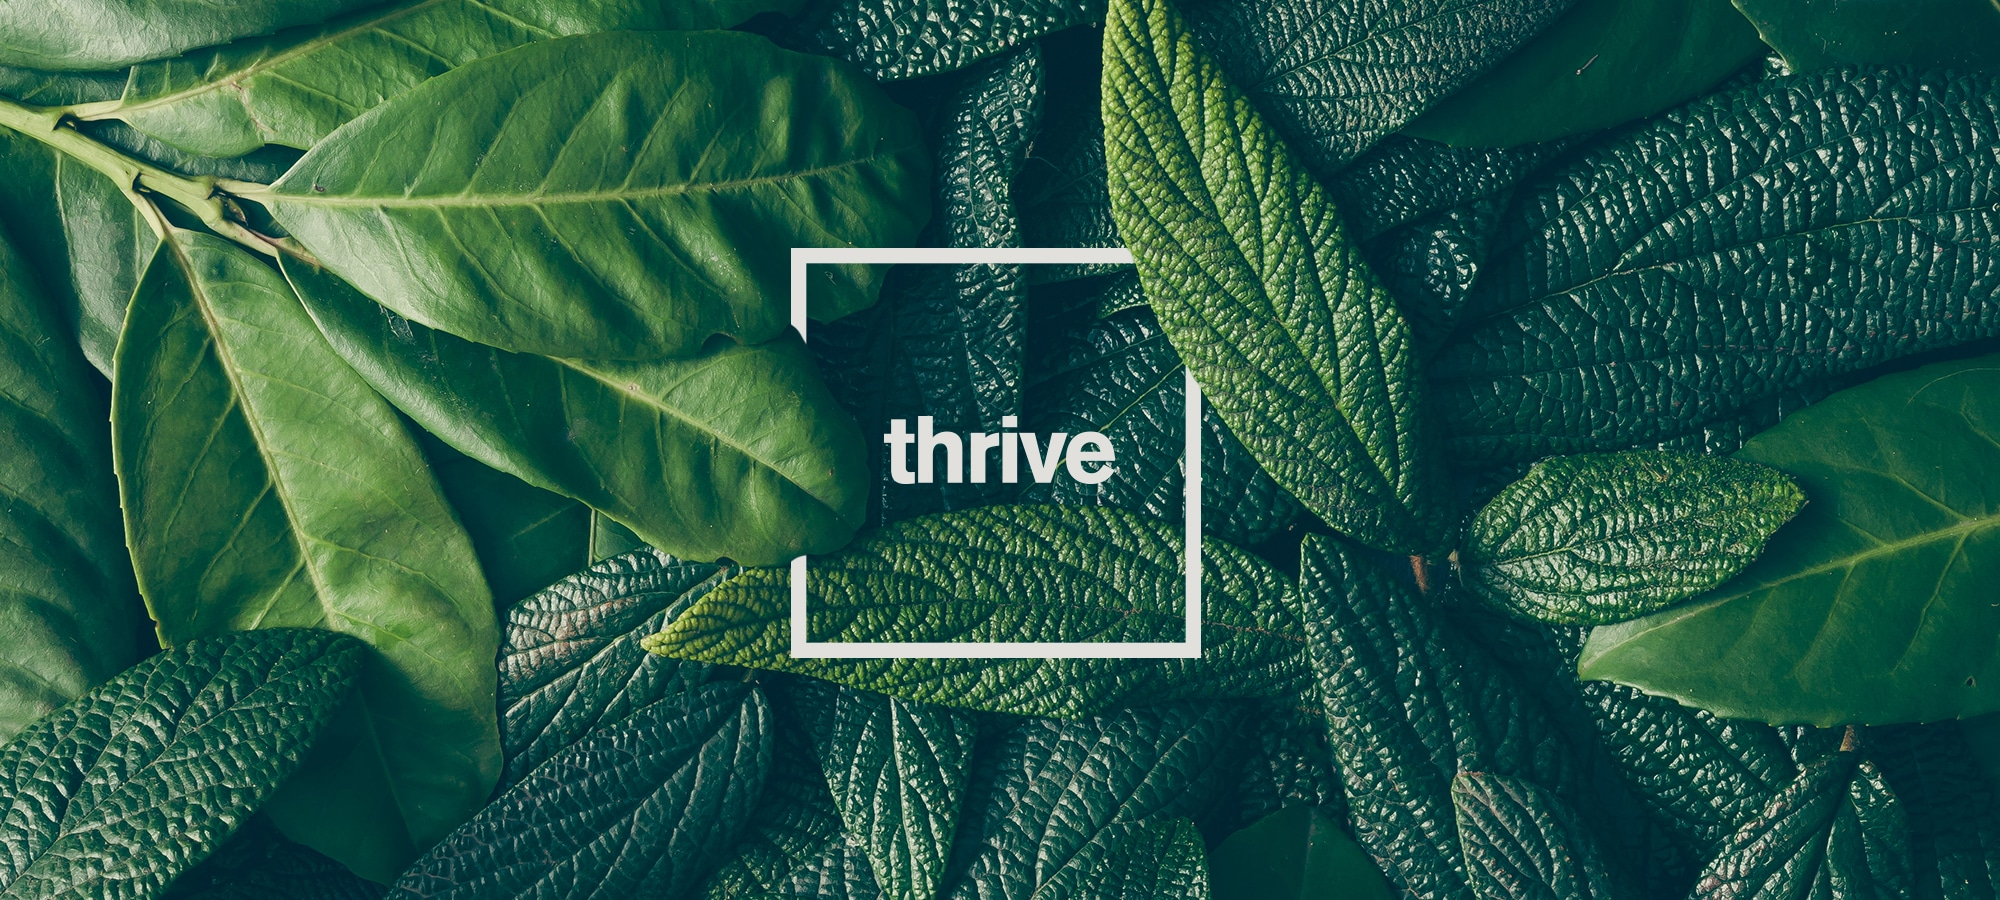 Thrive Logo in front of greenery background